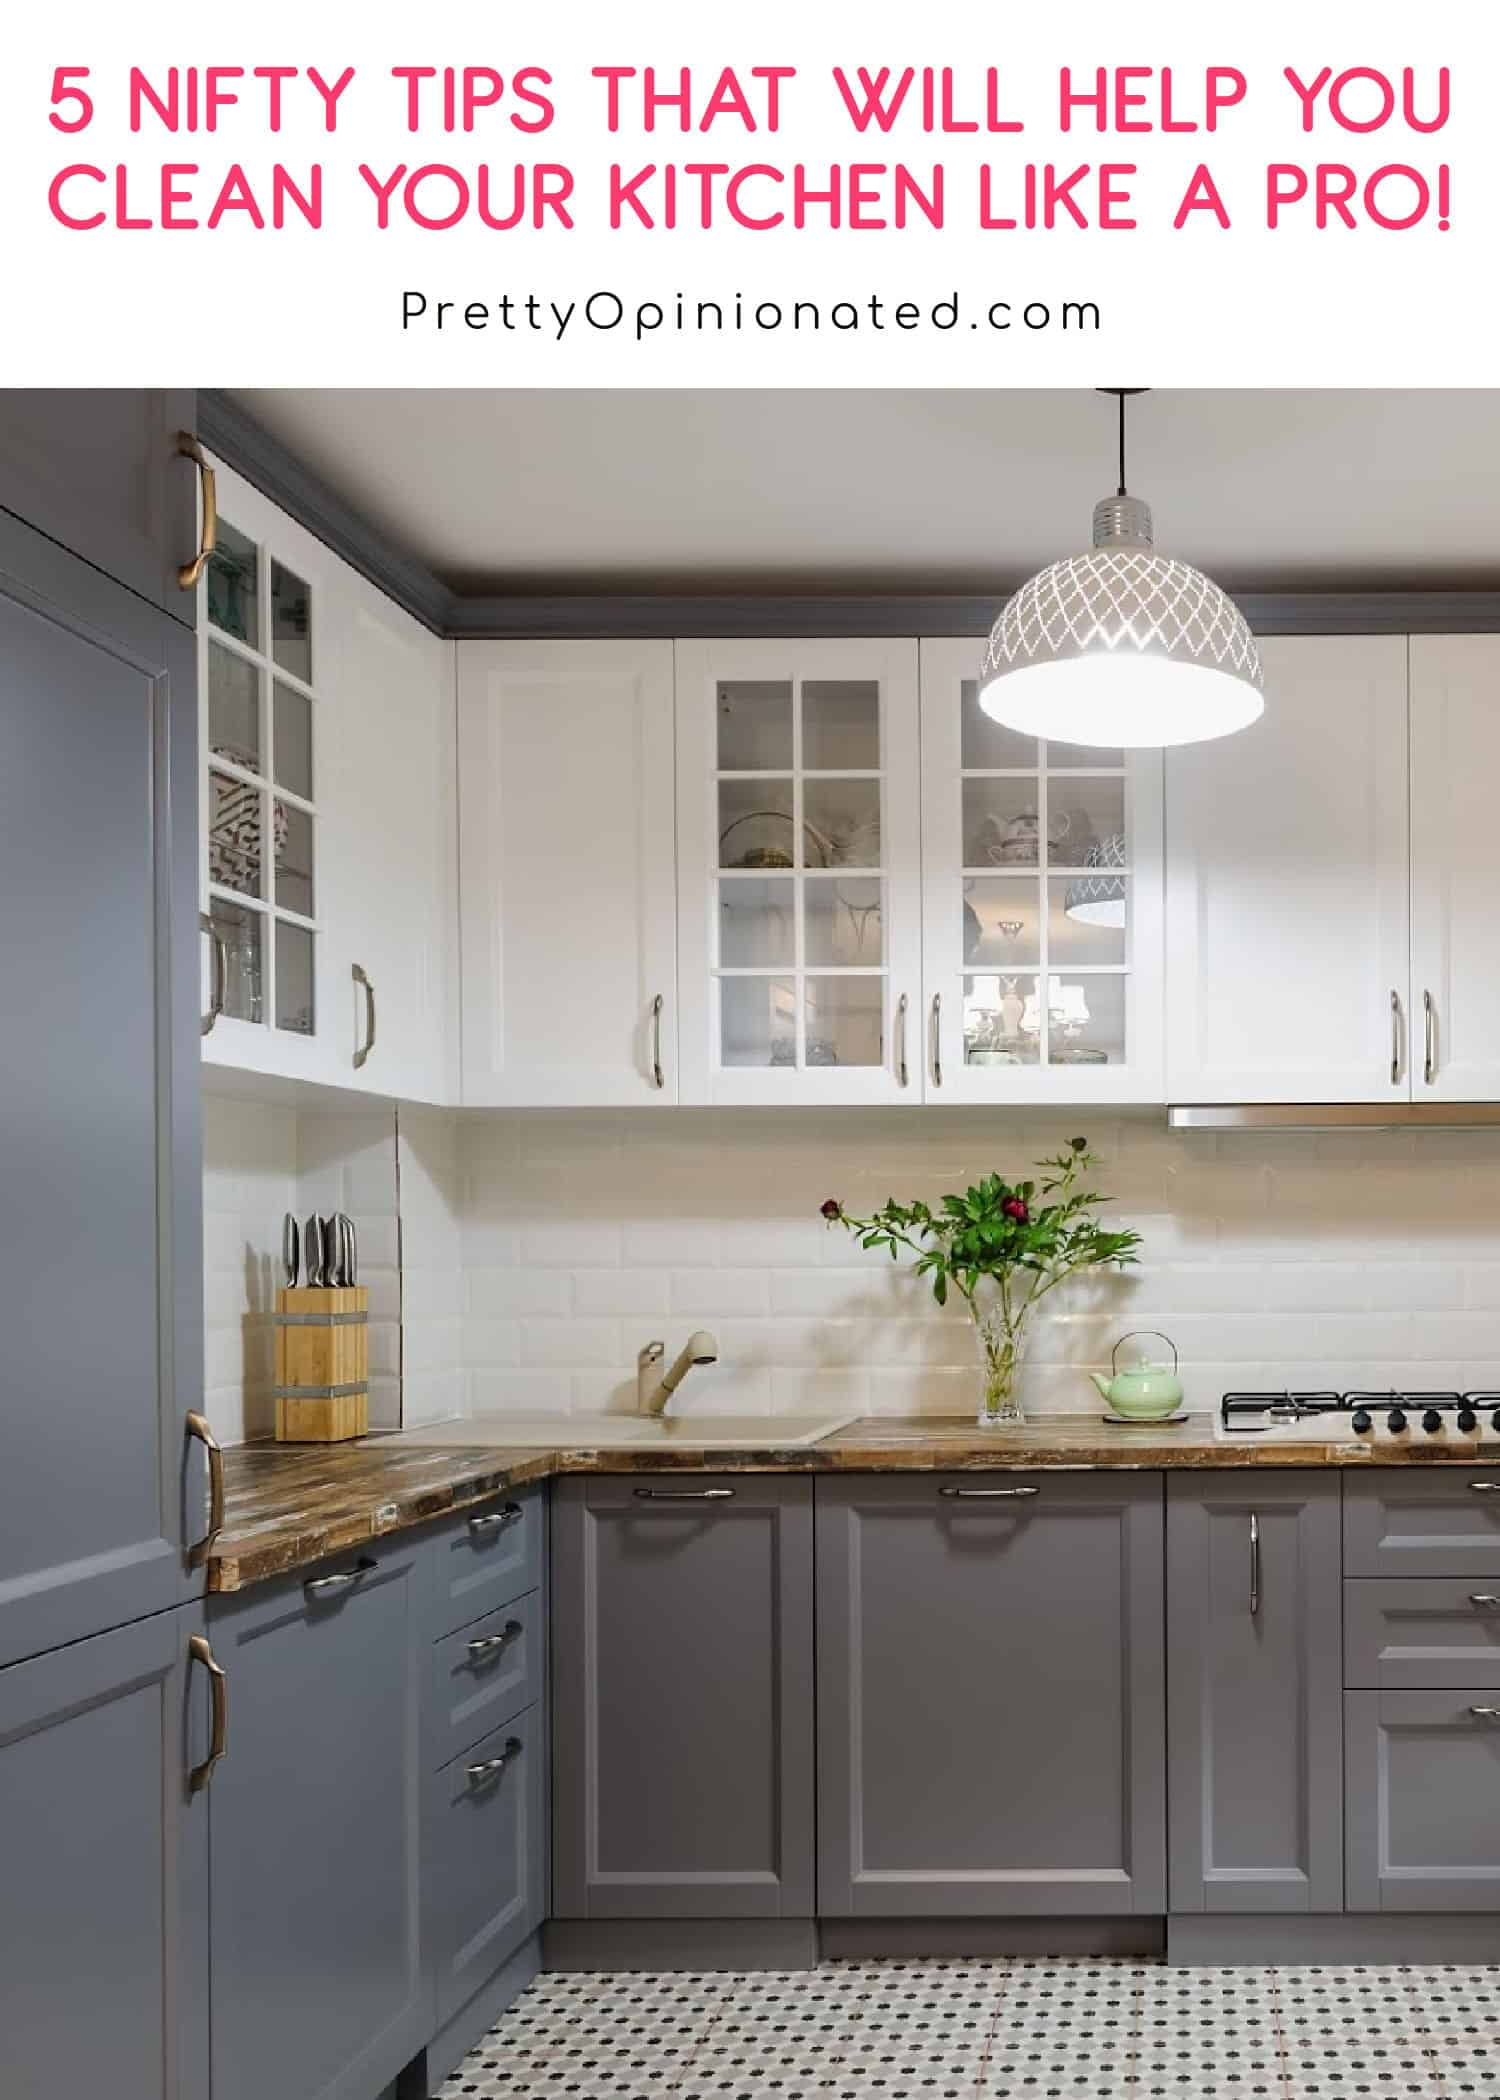 5 Nifty Tips You Can Use to Clean Your Kitchen